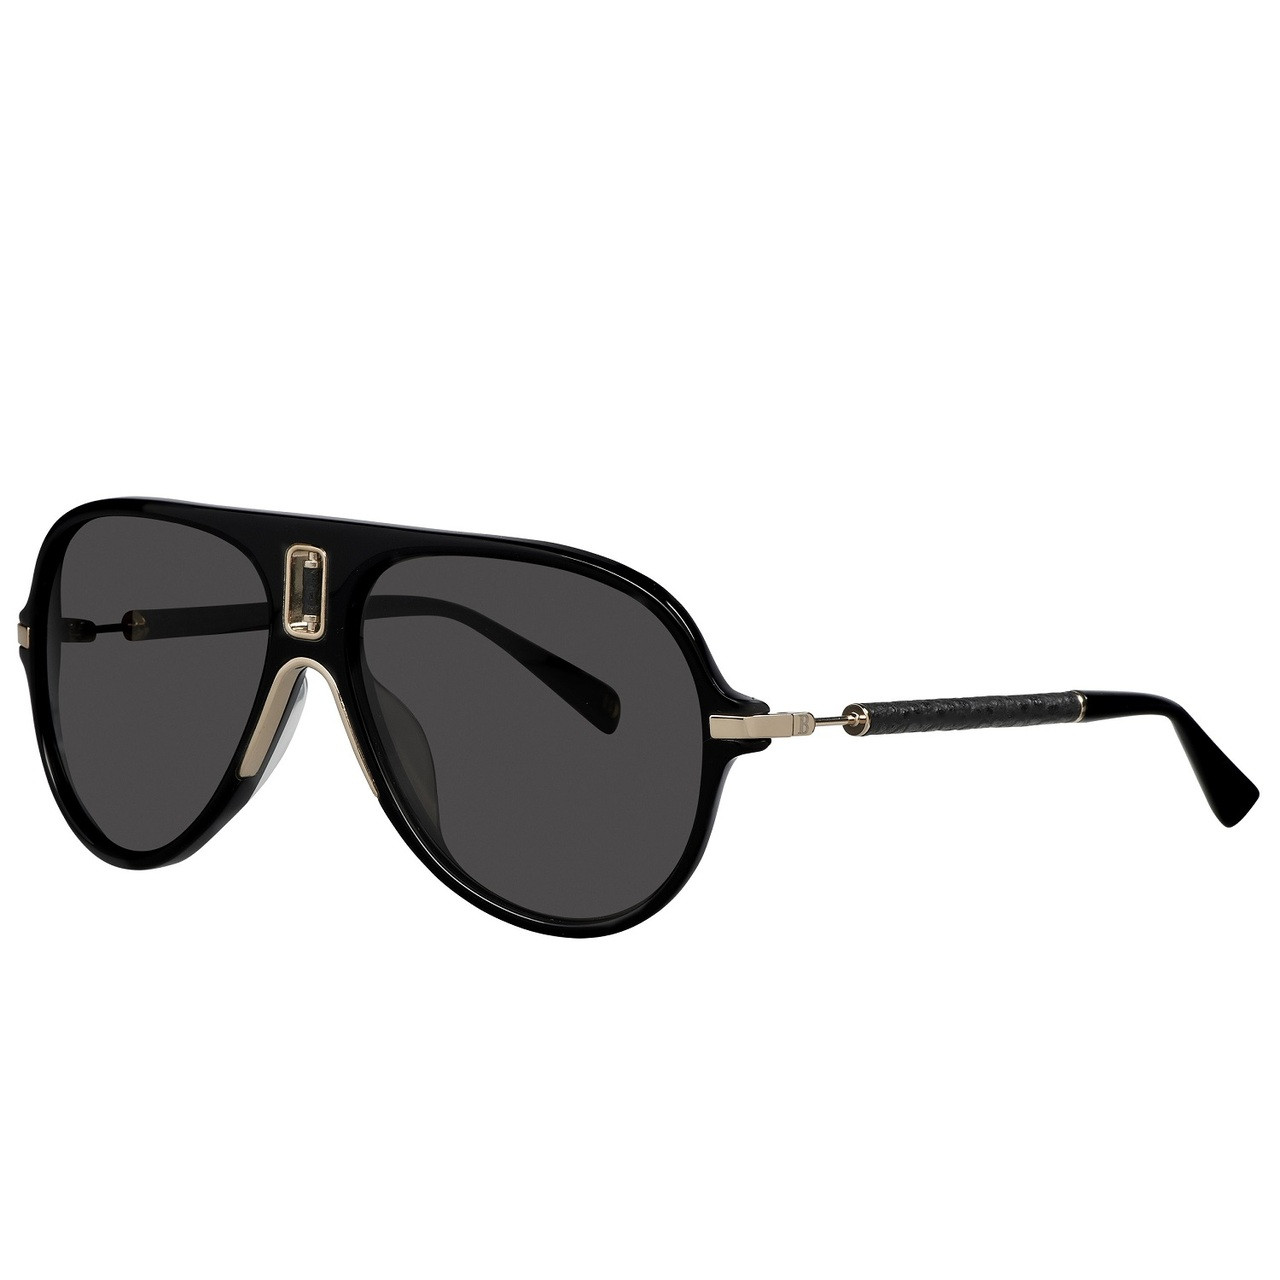 07763c75a5e574 Balmain Limited Edition STUDIO Acetate Cutout Aviator Sunglasses. Price:  $500.00. Image 1. Larger / More Photos